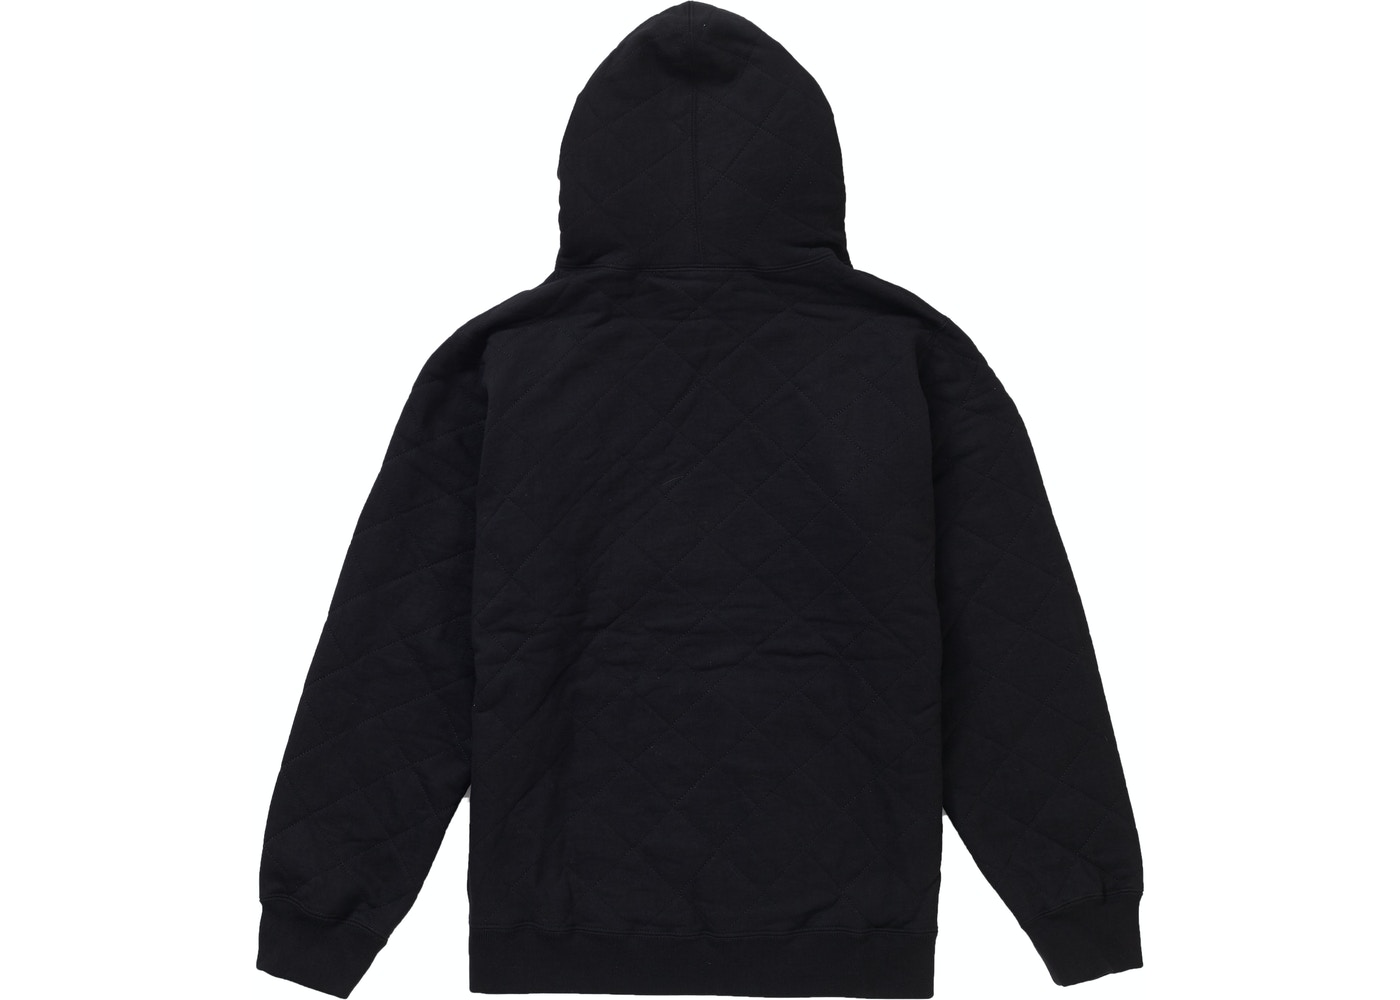 7ac3cc482 Supreme Quilted Hooded Sweatshirt Black - FW18